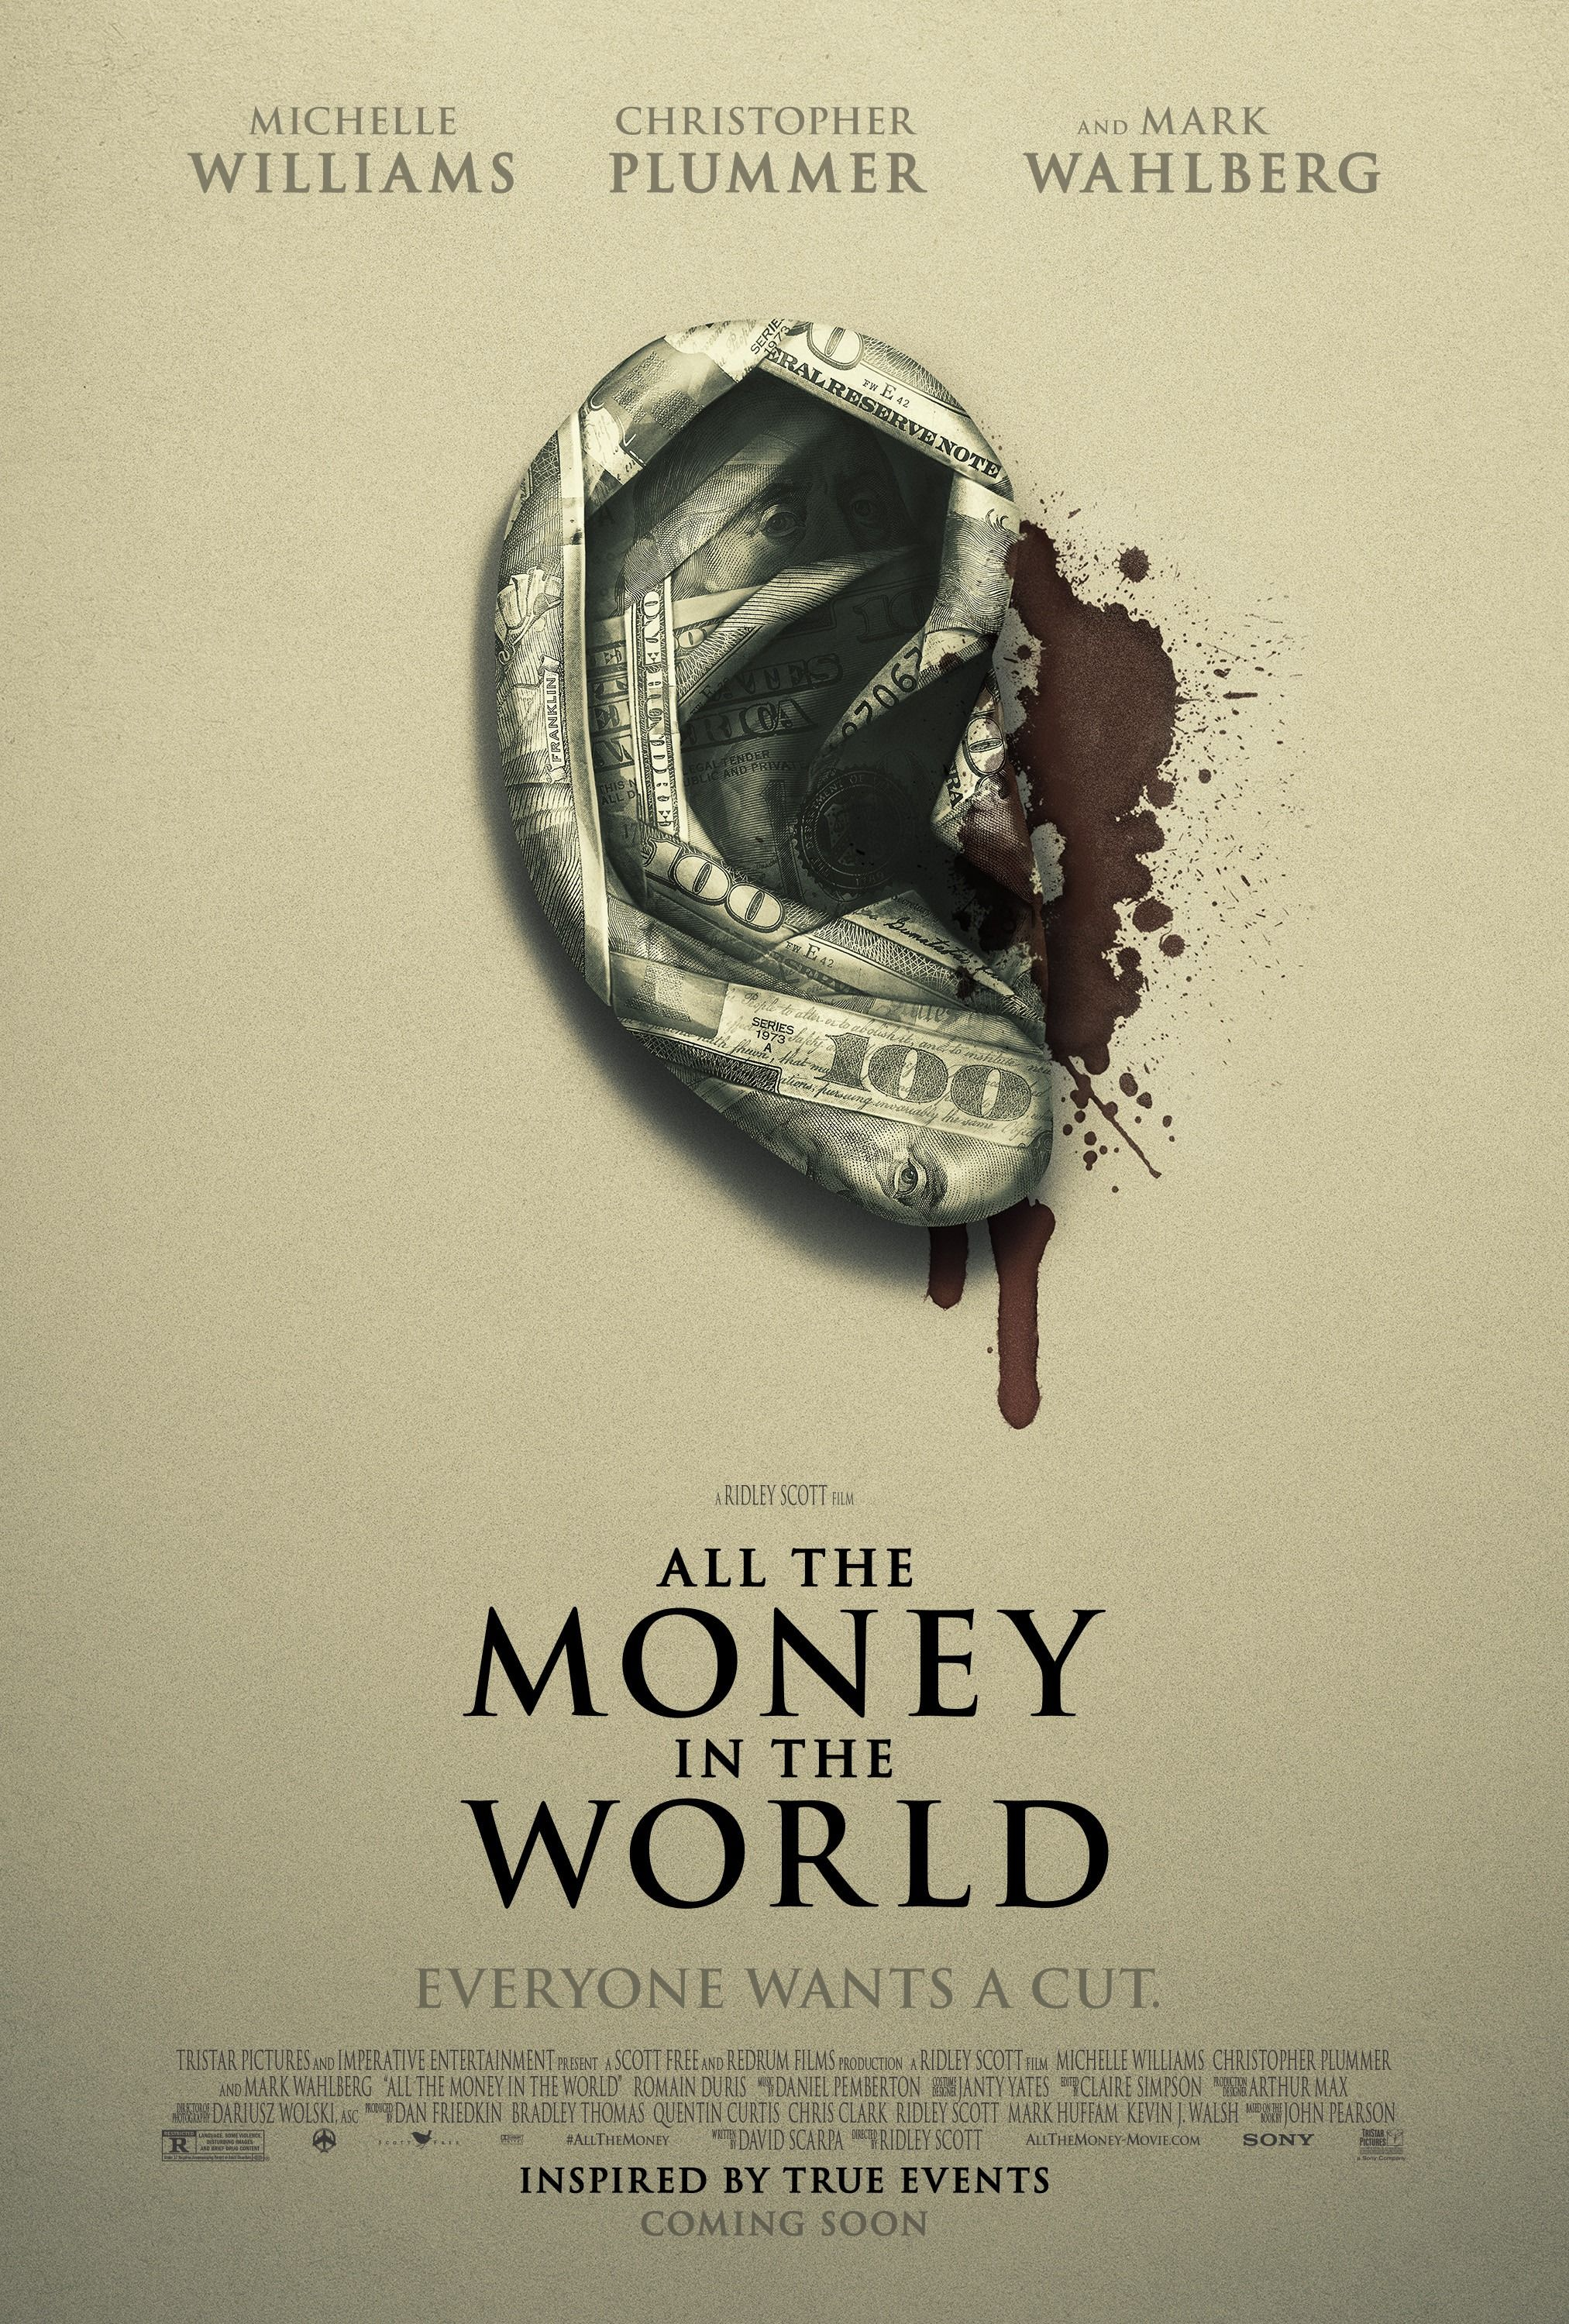 All the money in the world - Bibliotheek.nl